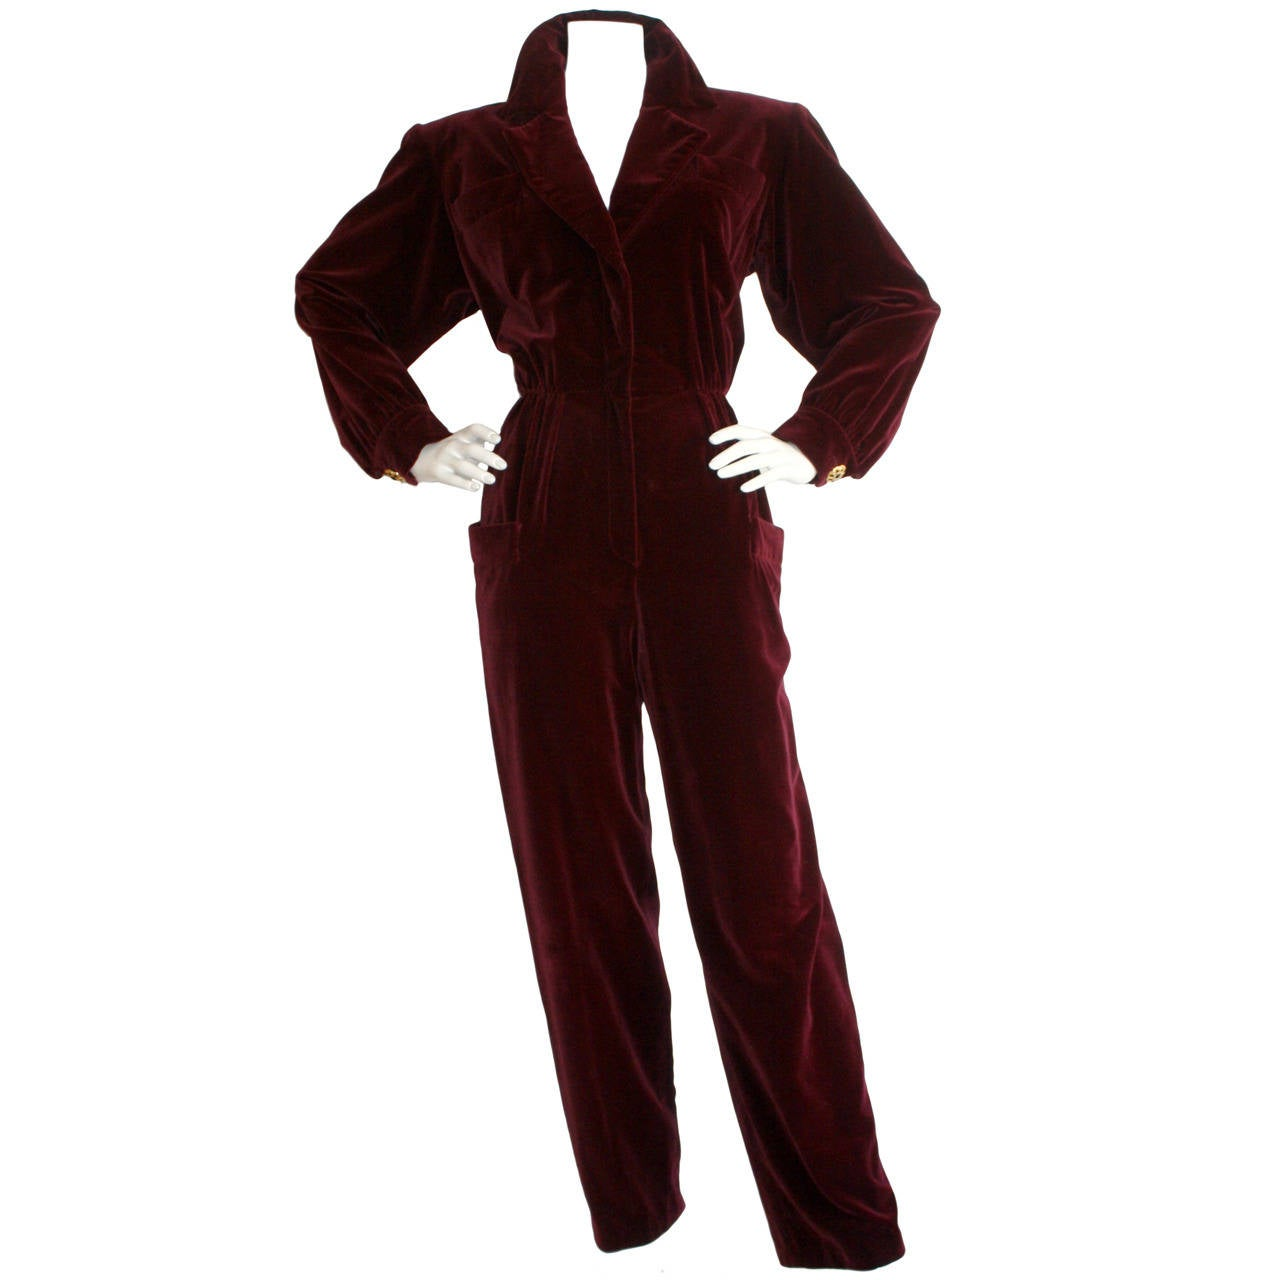 Important Vintage Yves Saint Laurent Le Smoking Burgundy Velvet Jumpsuit For Sale